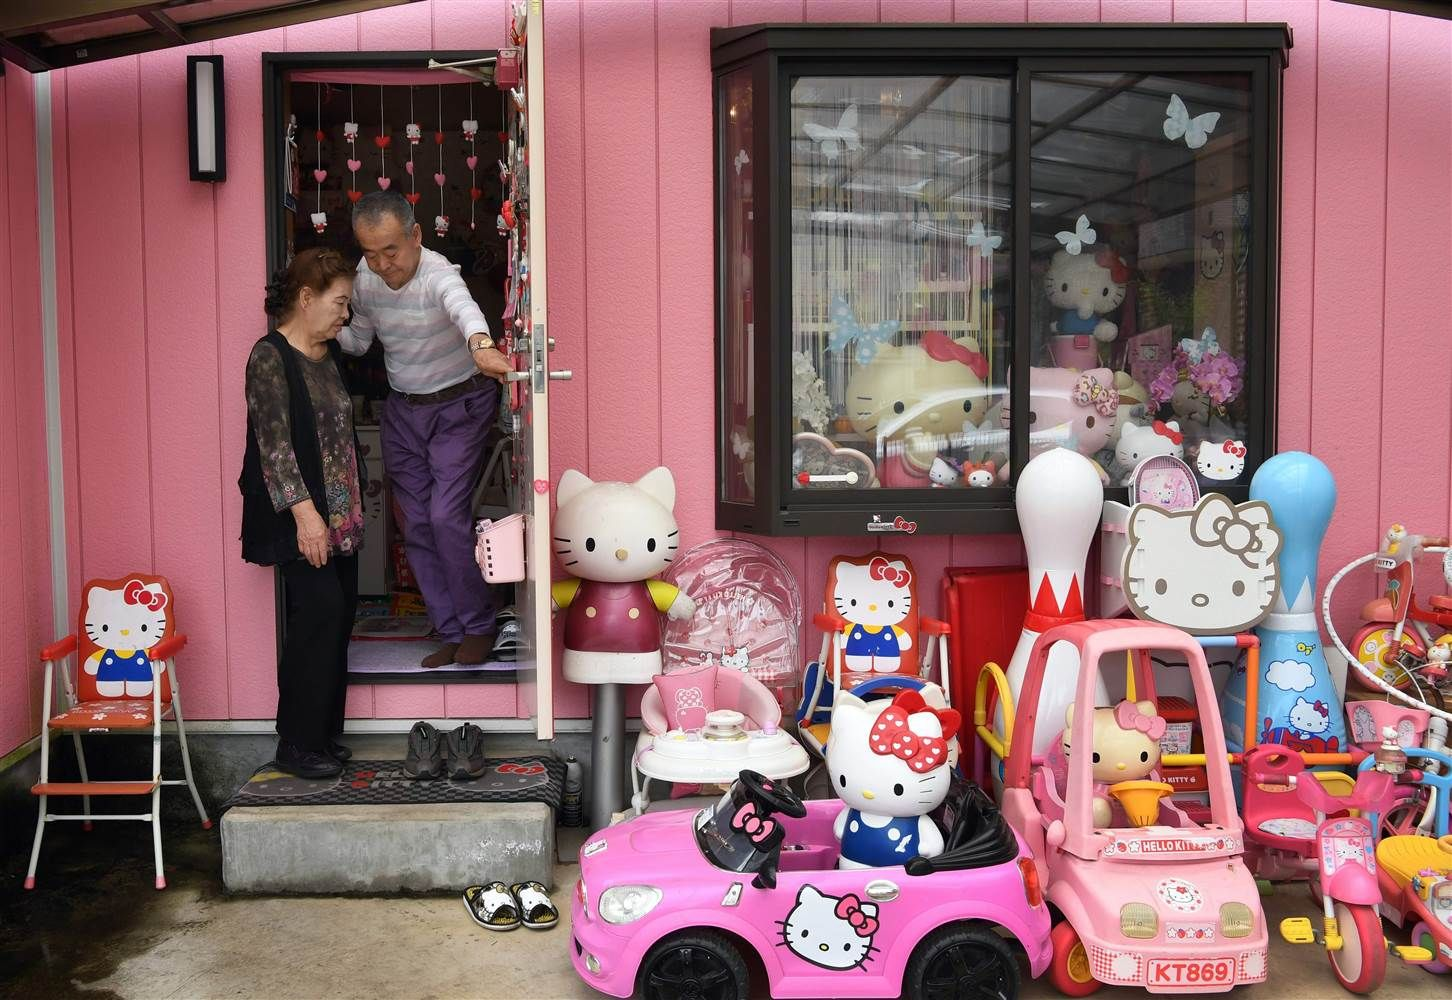 170704-hello-kitty-4-ew-1128a_0ff675617cb9735e8416497cf204ae80.nbcnews-ux-2880-1000.jpg